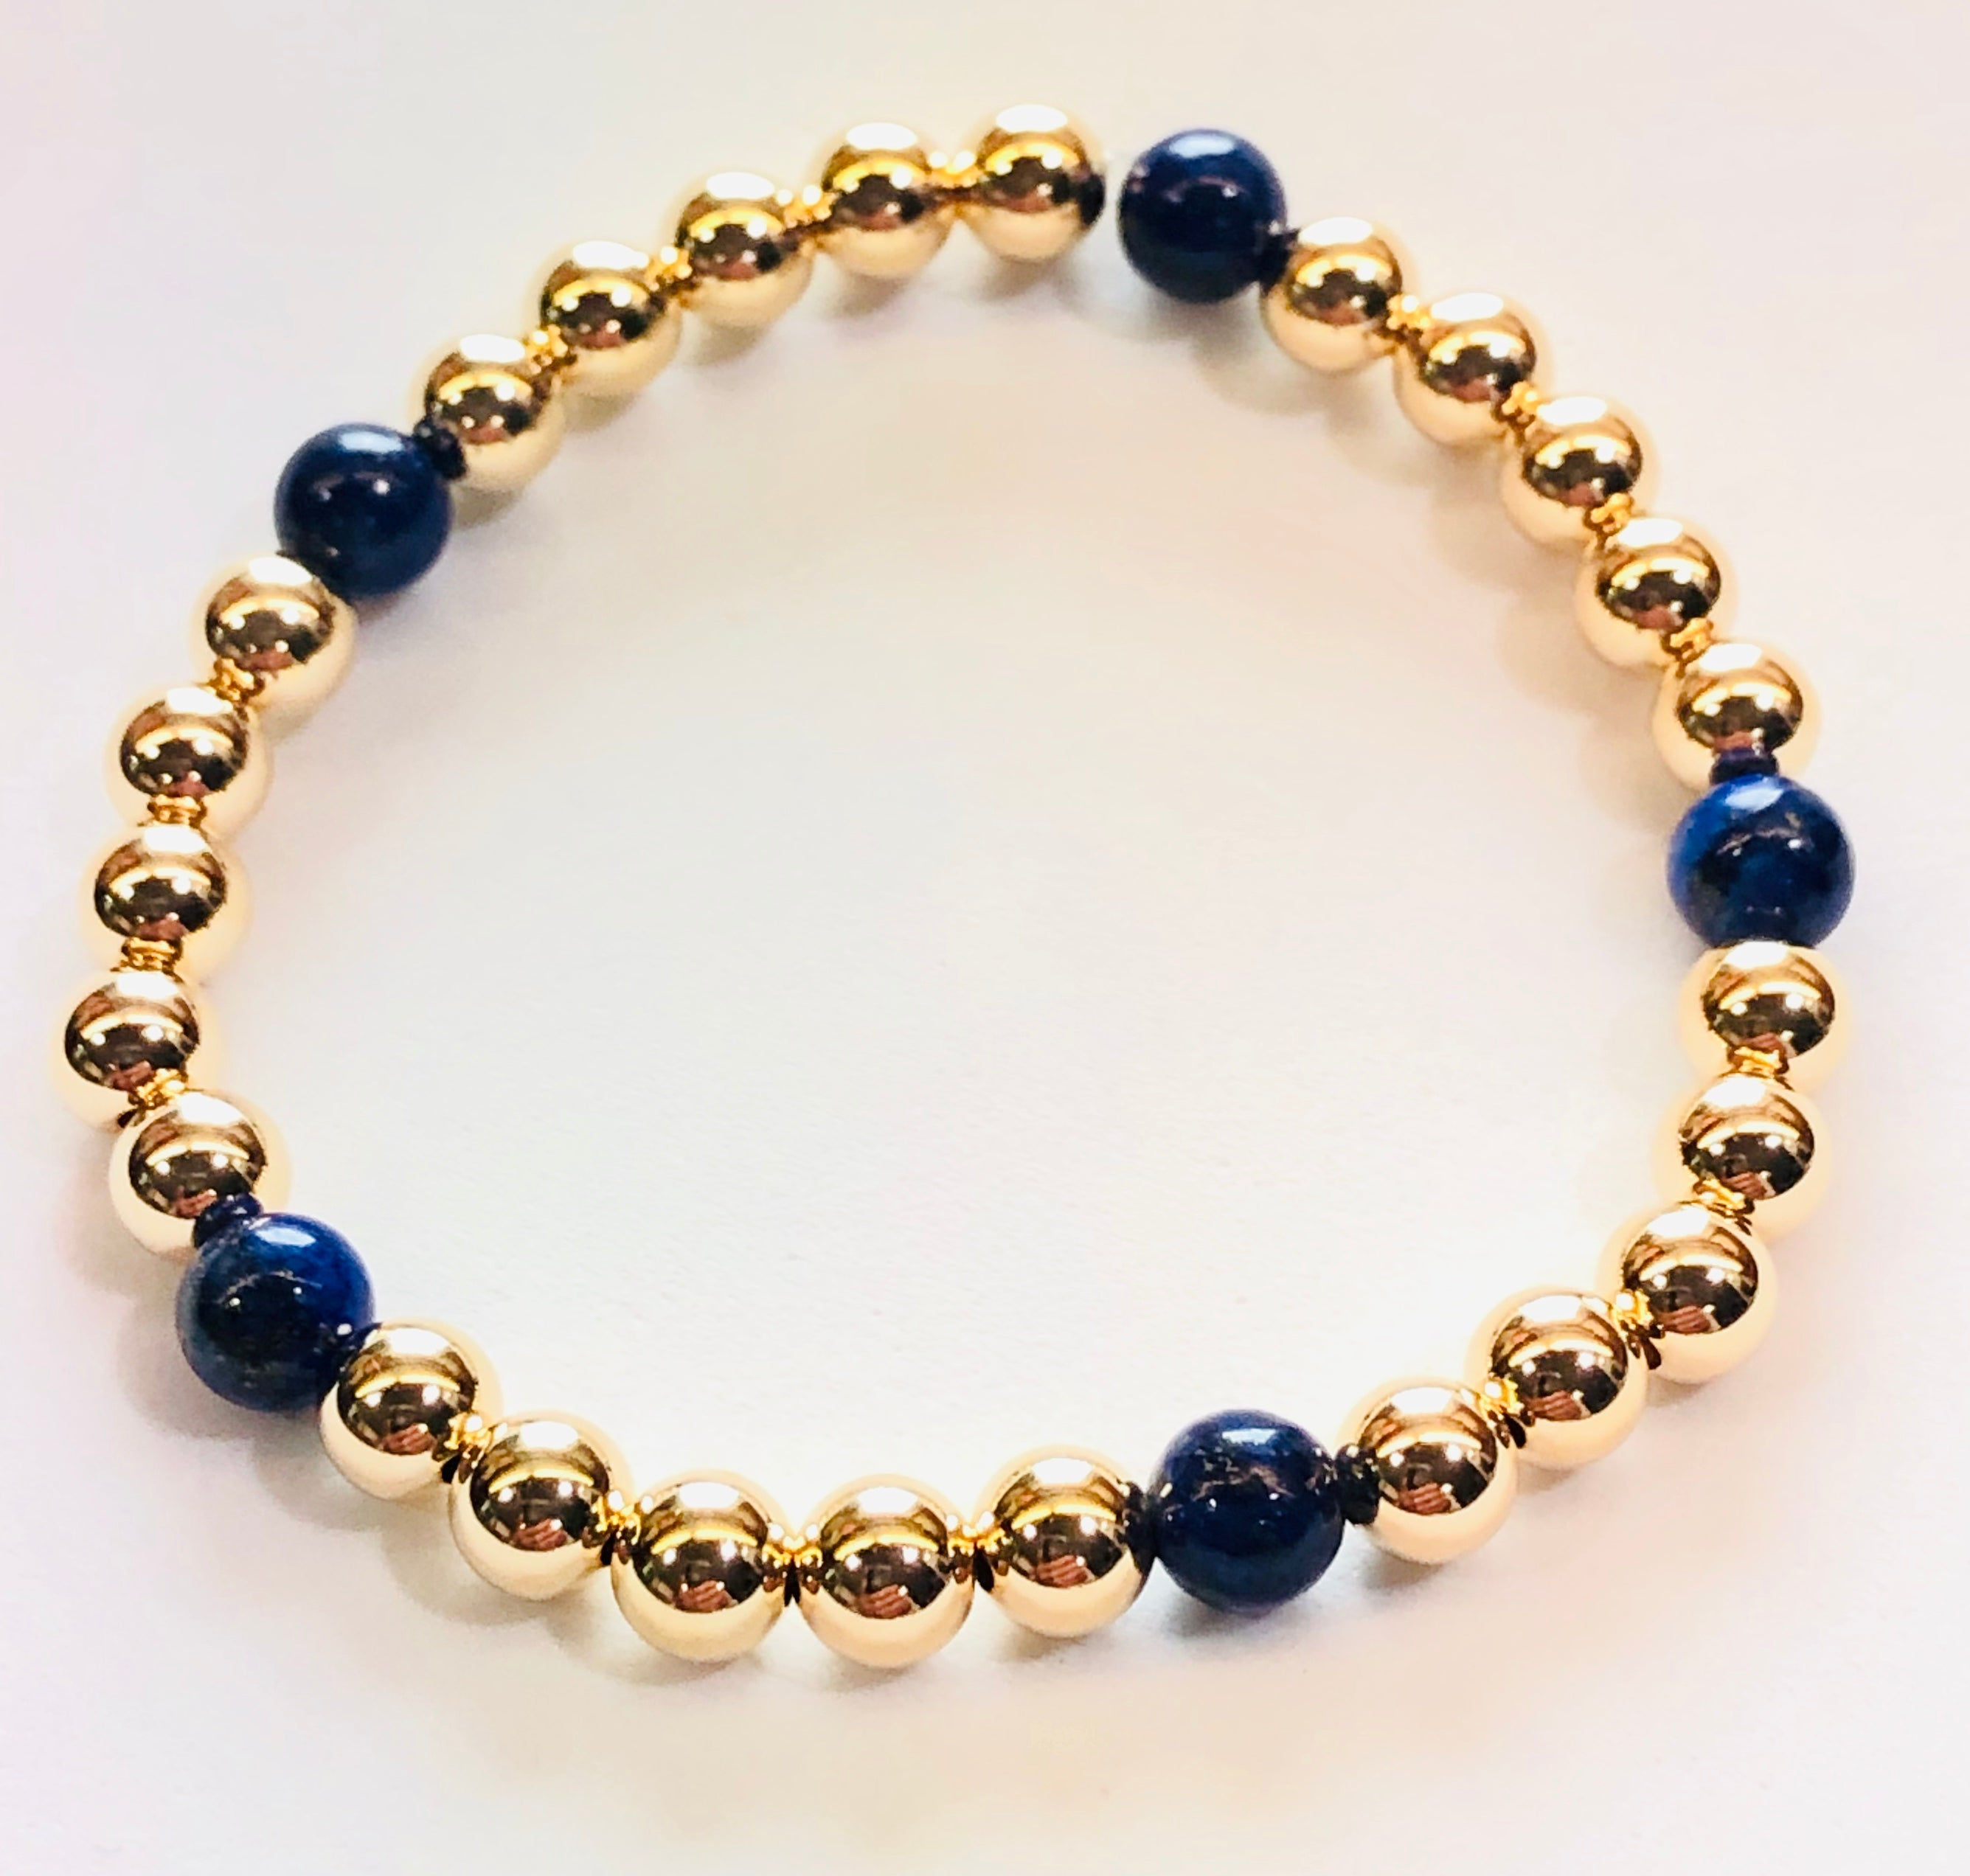 6mm 14kt Gold Filled Bead Bracelet with 5 6mm Blue Lapis Beads